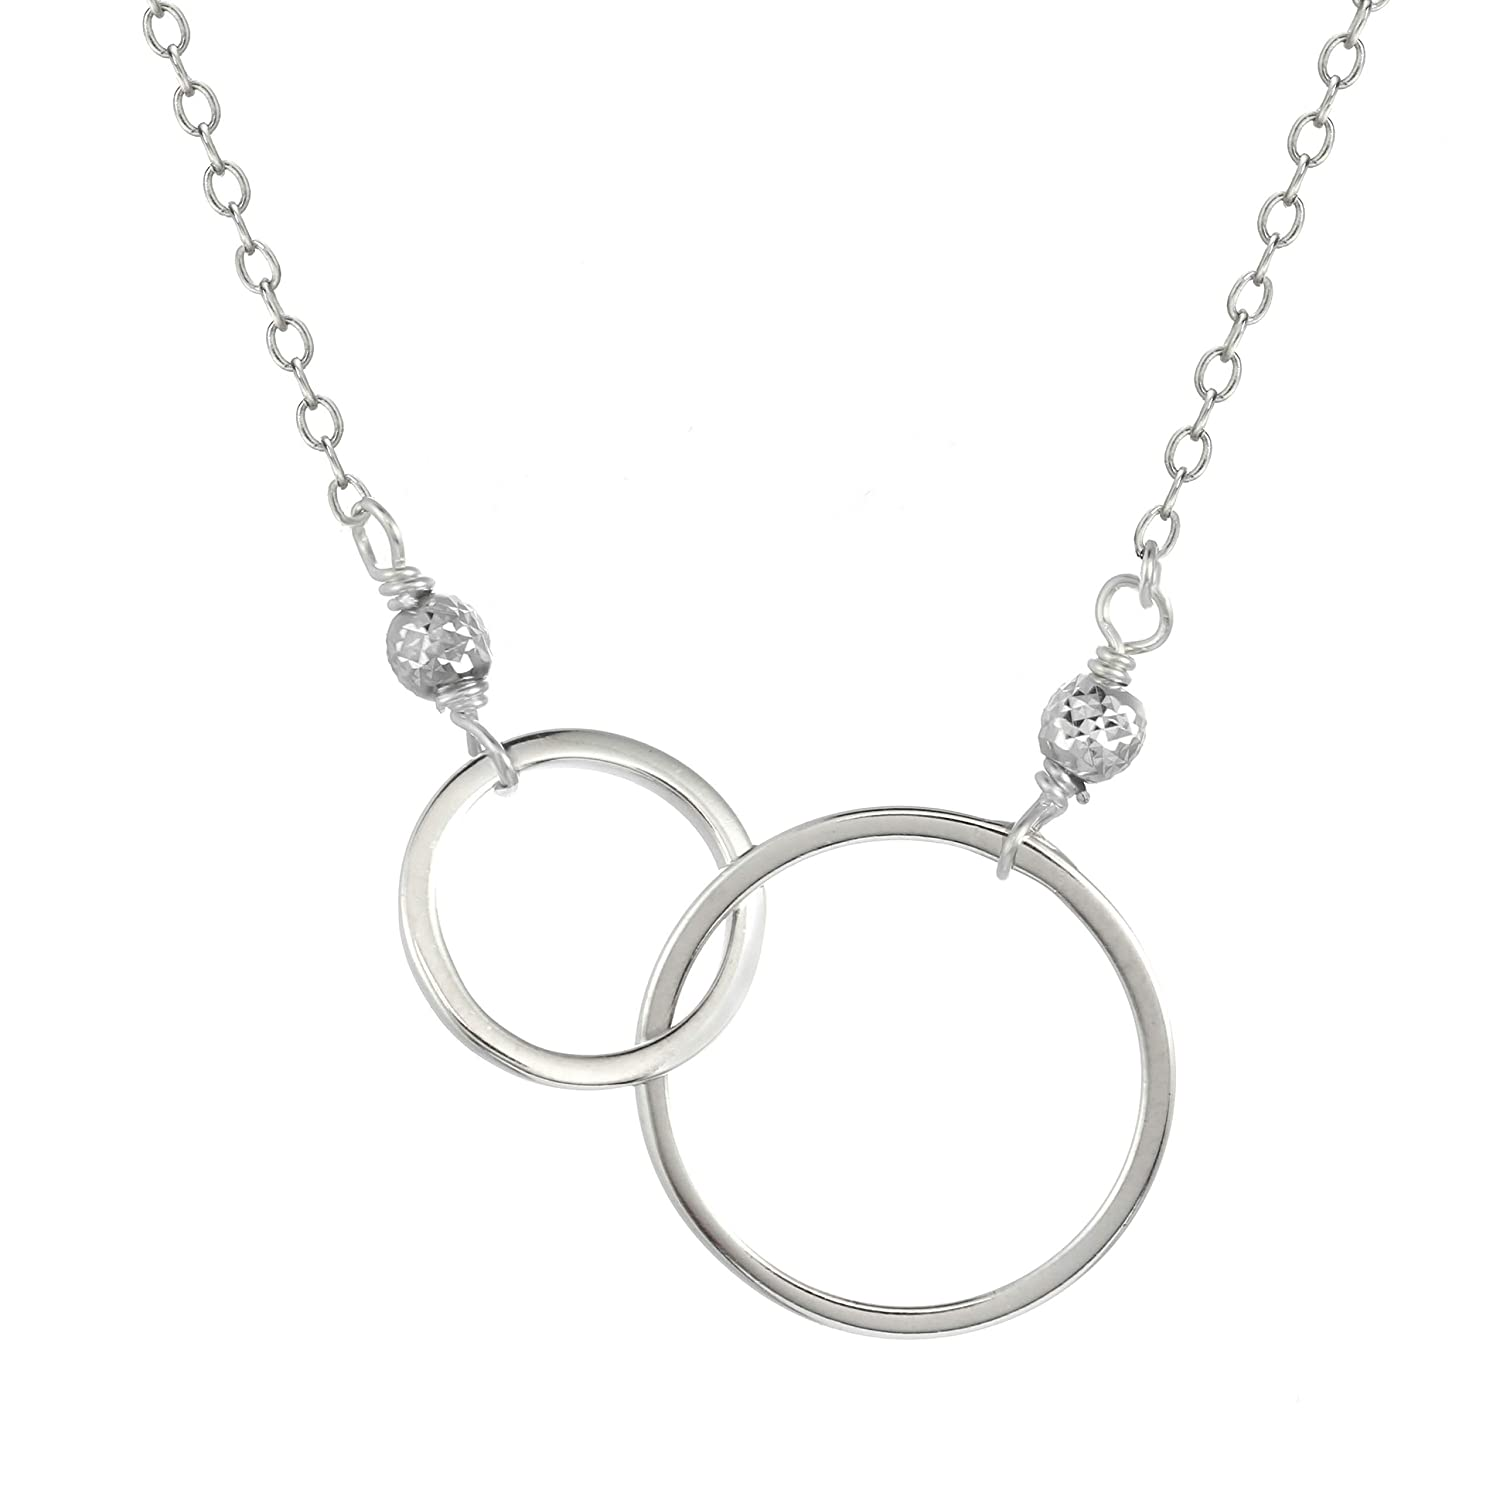 Sterling Silver with Two Circles Pendant Chain Necklace with silver bead accents 16 1 Extender